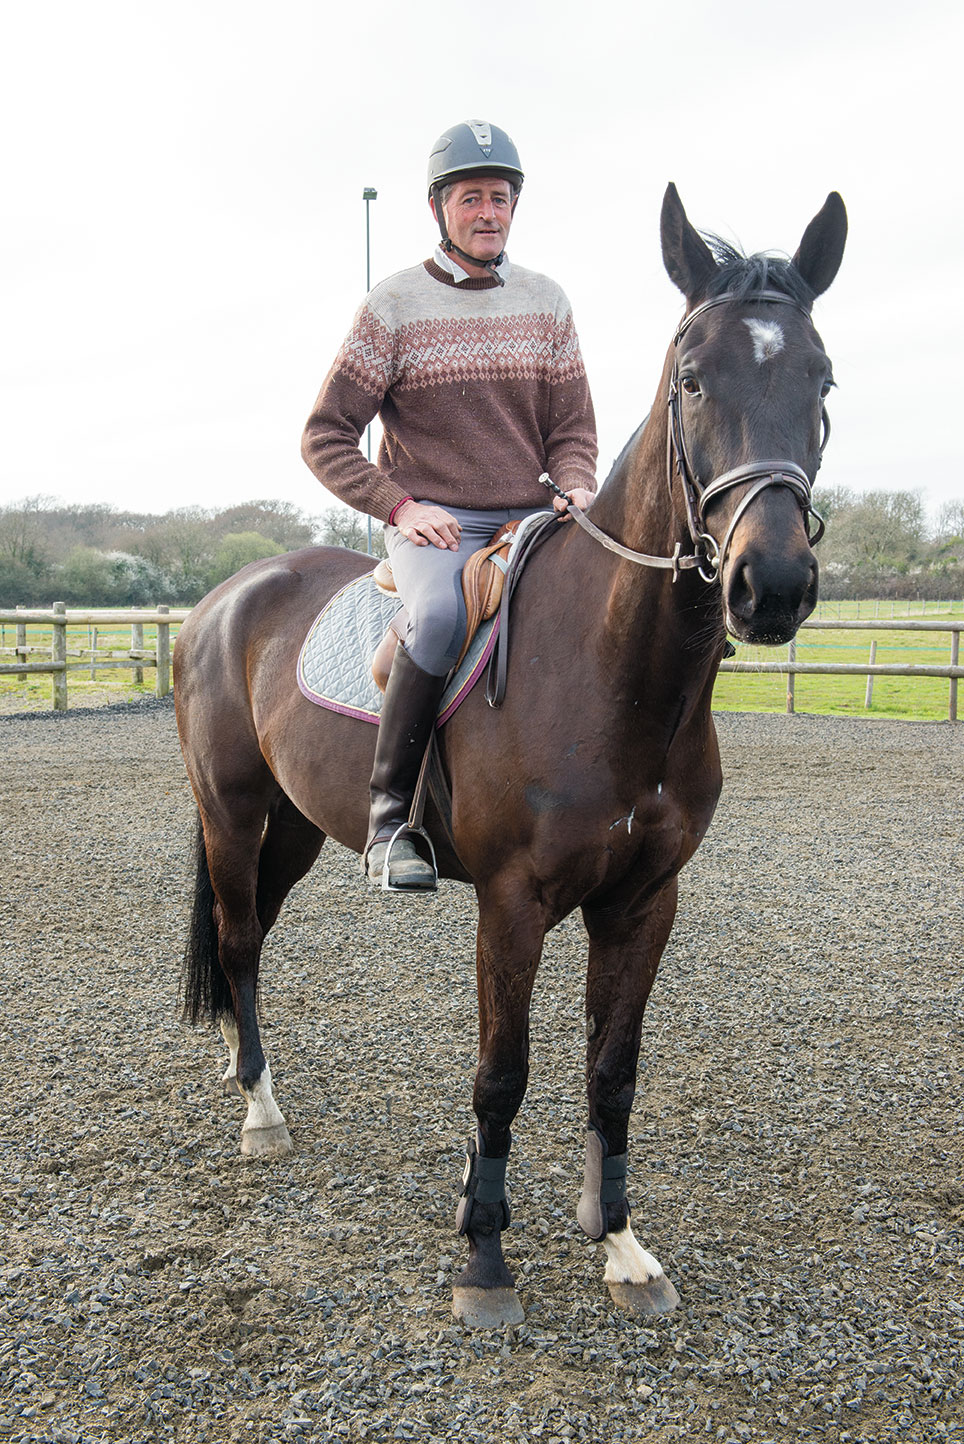 Robert Booth A Wealth Of Experience With Horses Island Life Magazine